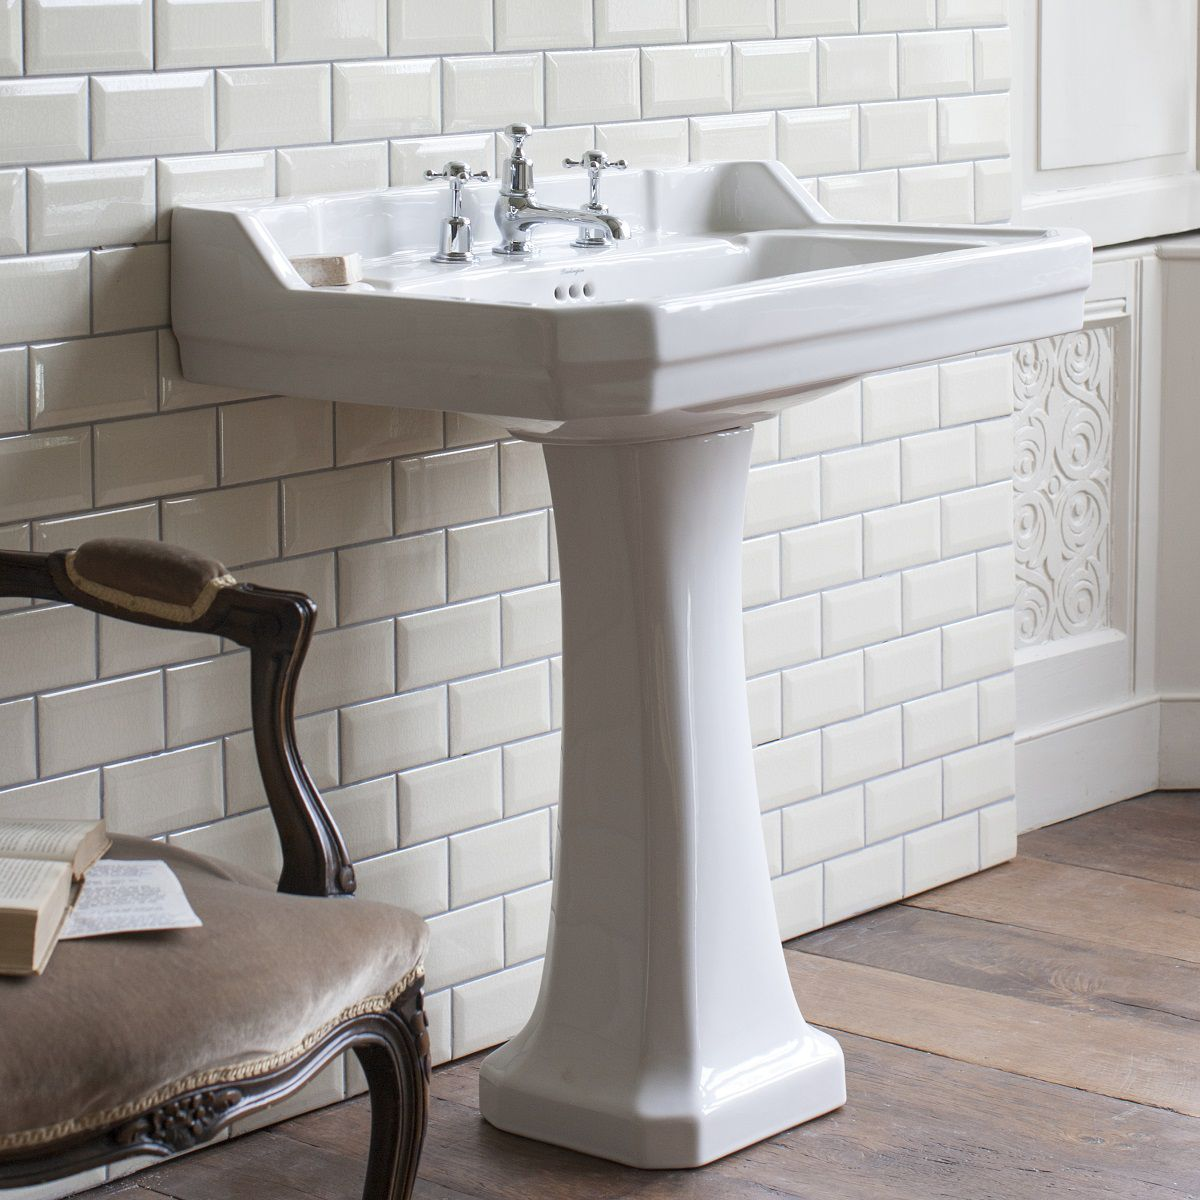 Edwardian Square Basin - blueskybathrooms